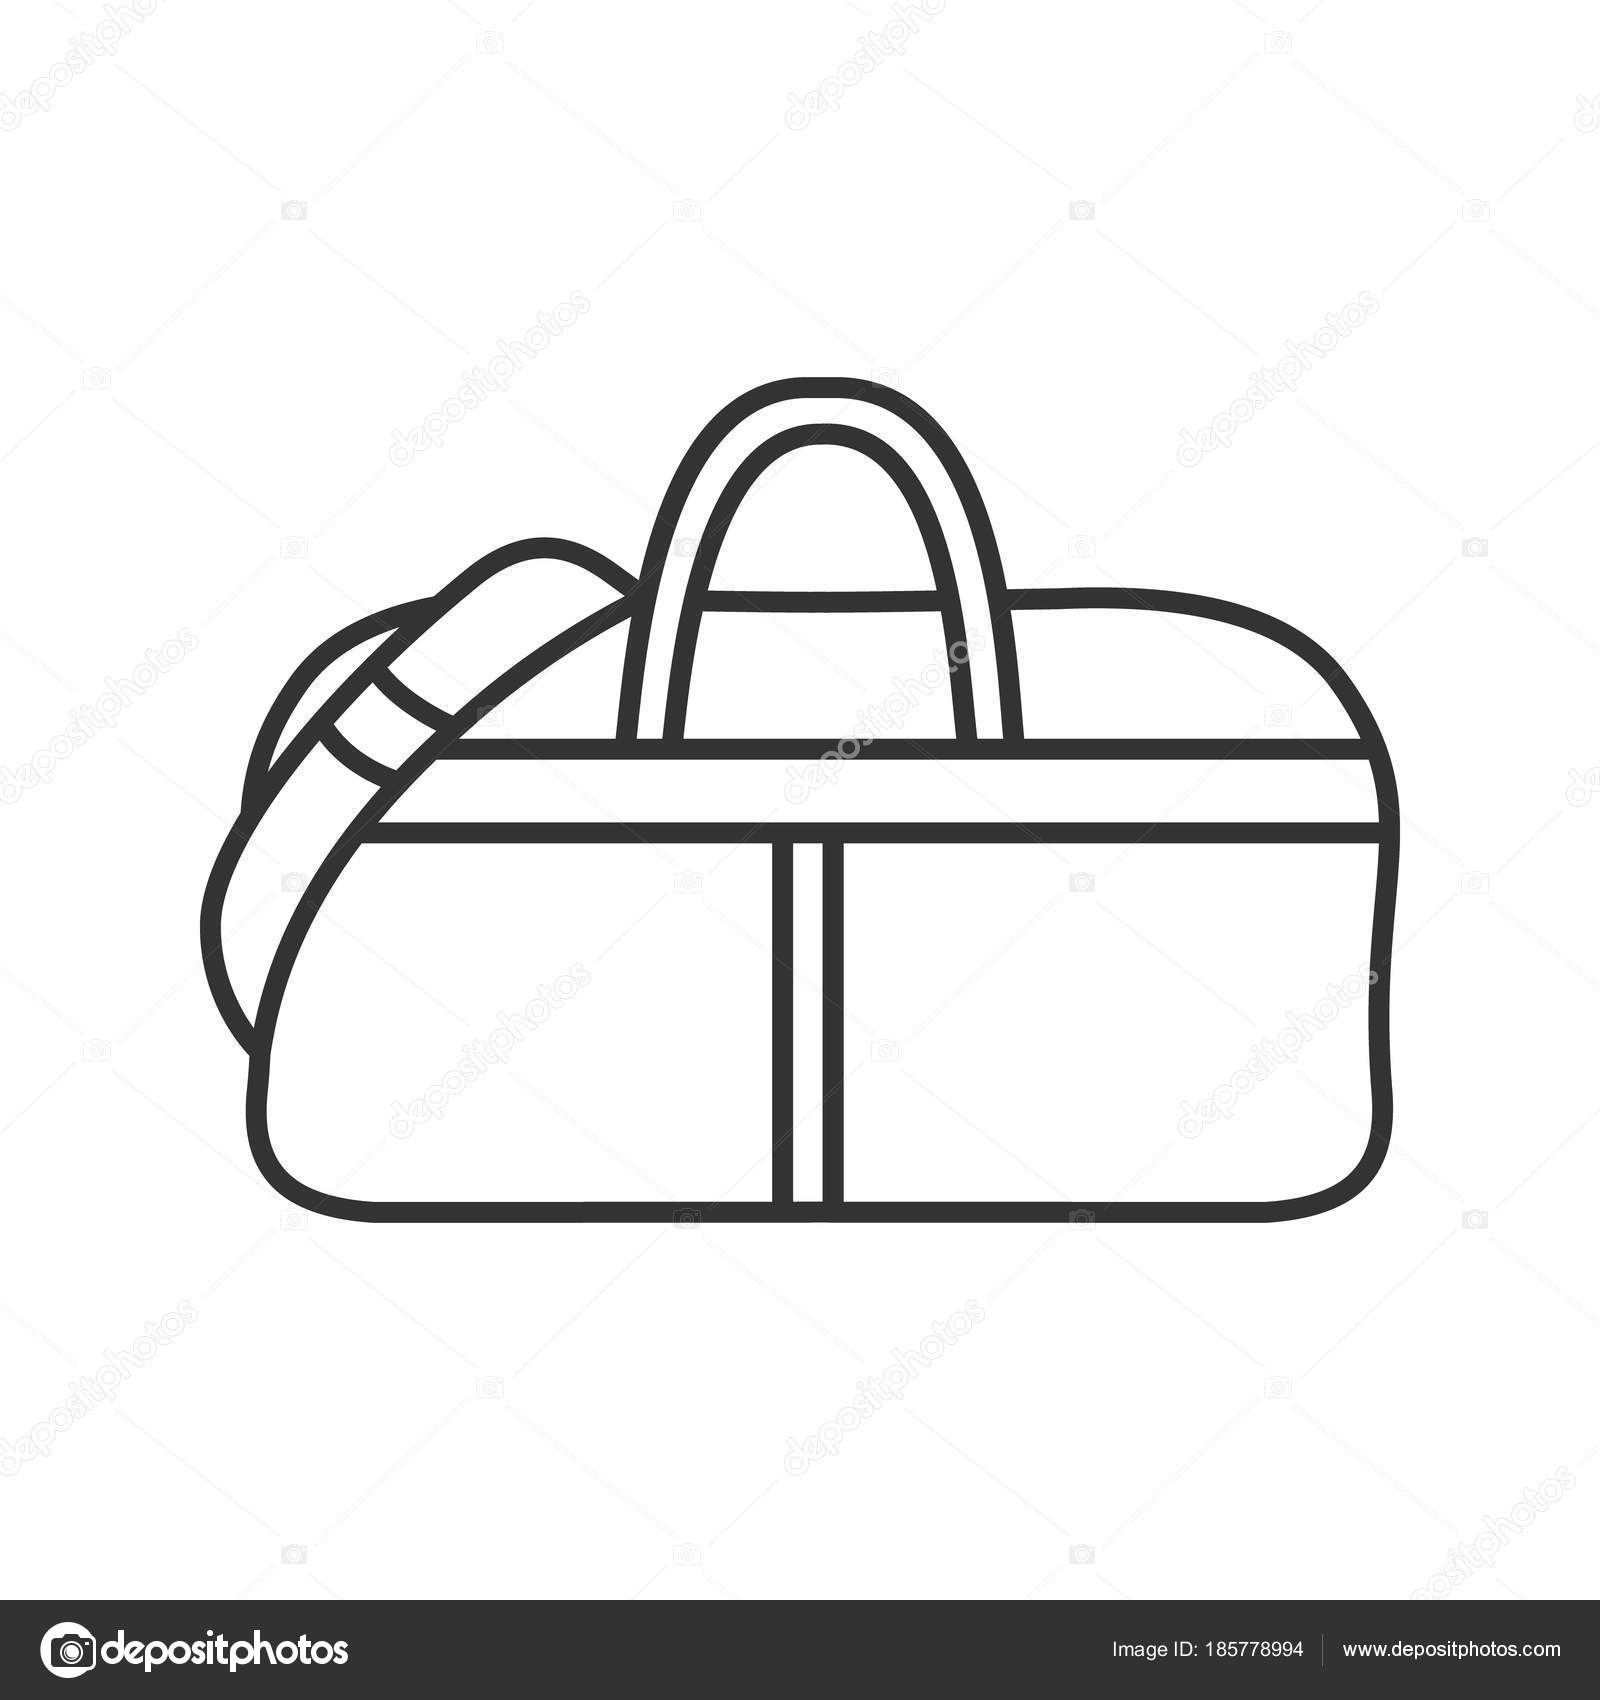 c46b2771fe Sports Bag Linear Icon Thin Line Illustration Duffel Handbag Contour —  Stock Vector